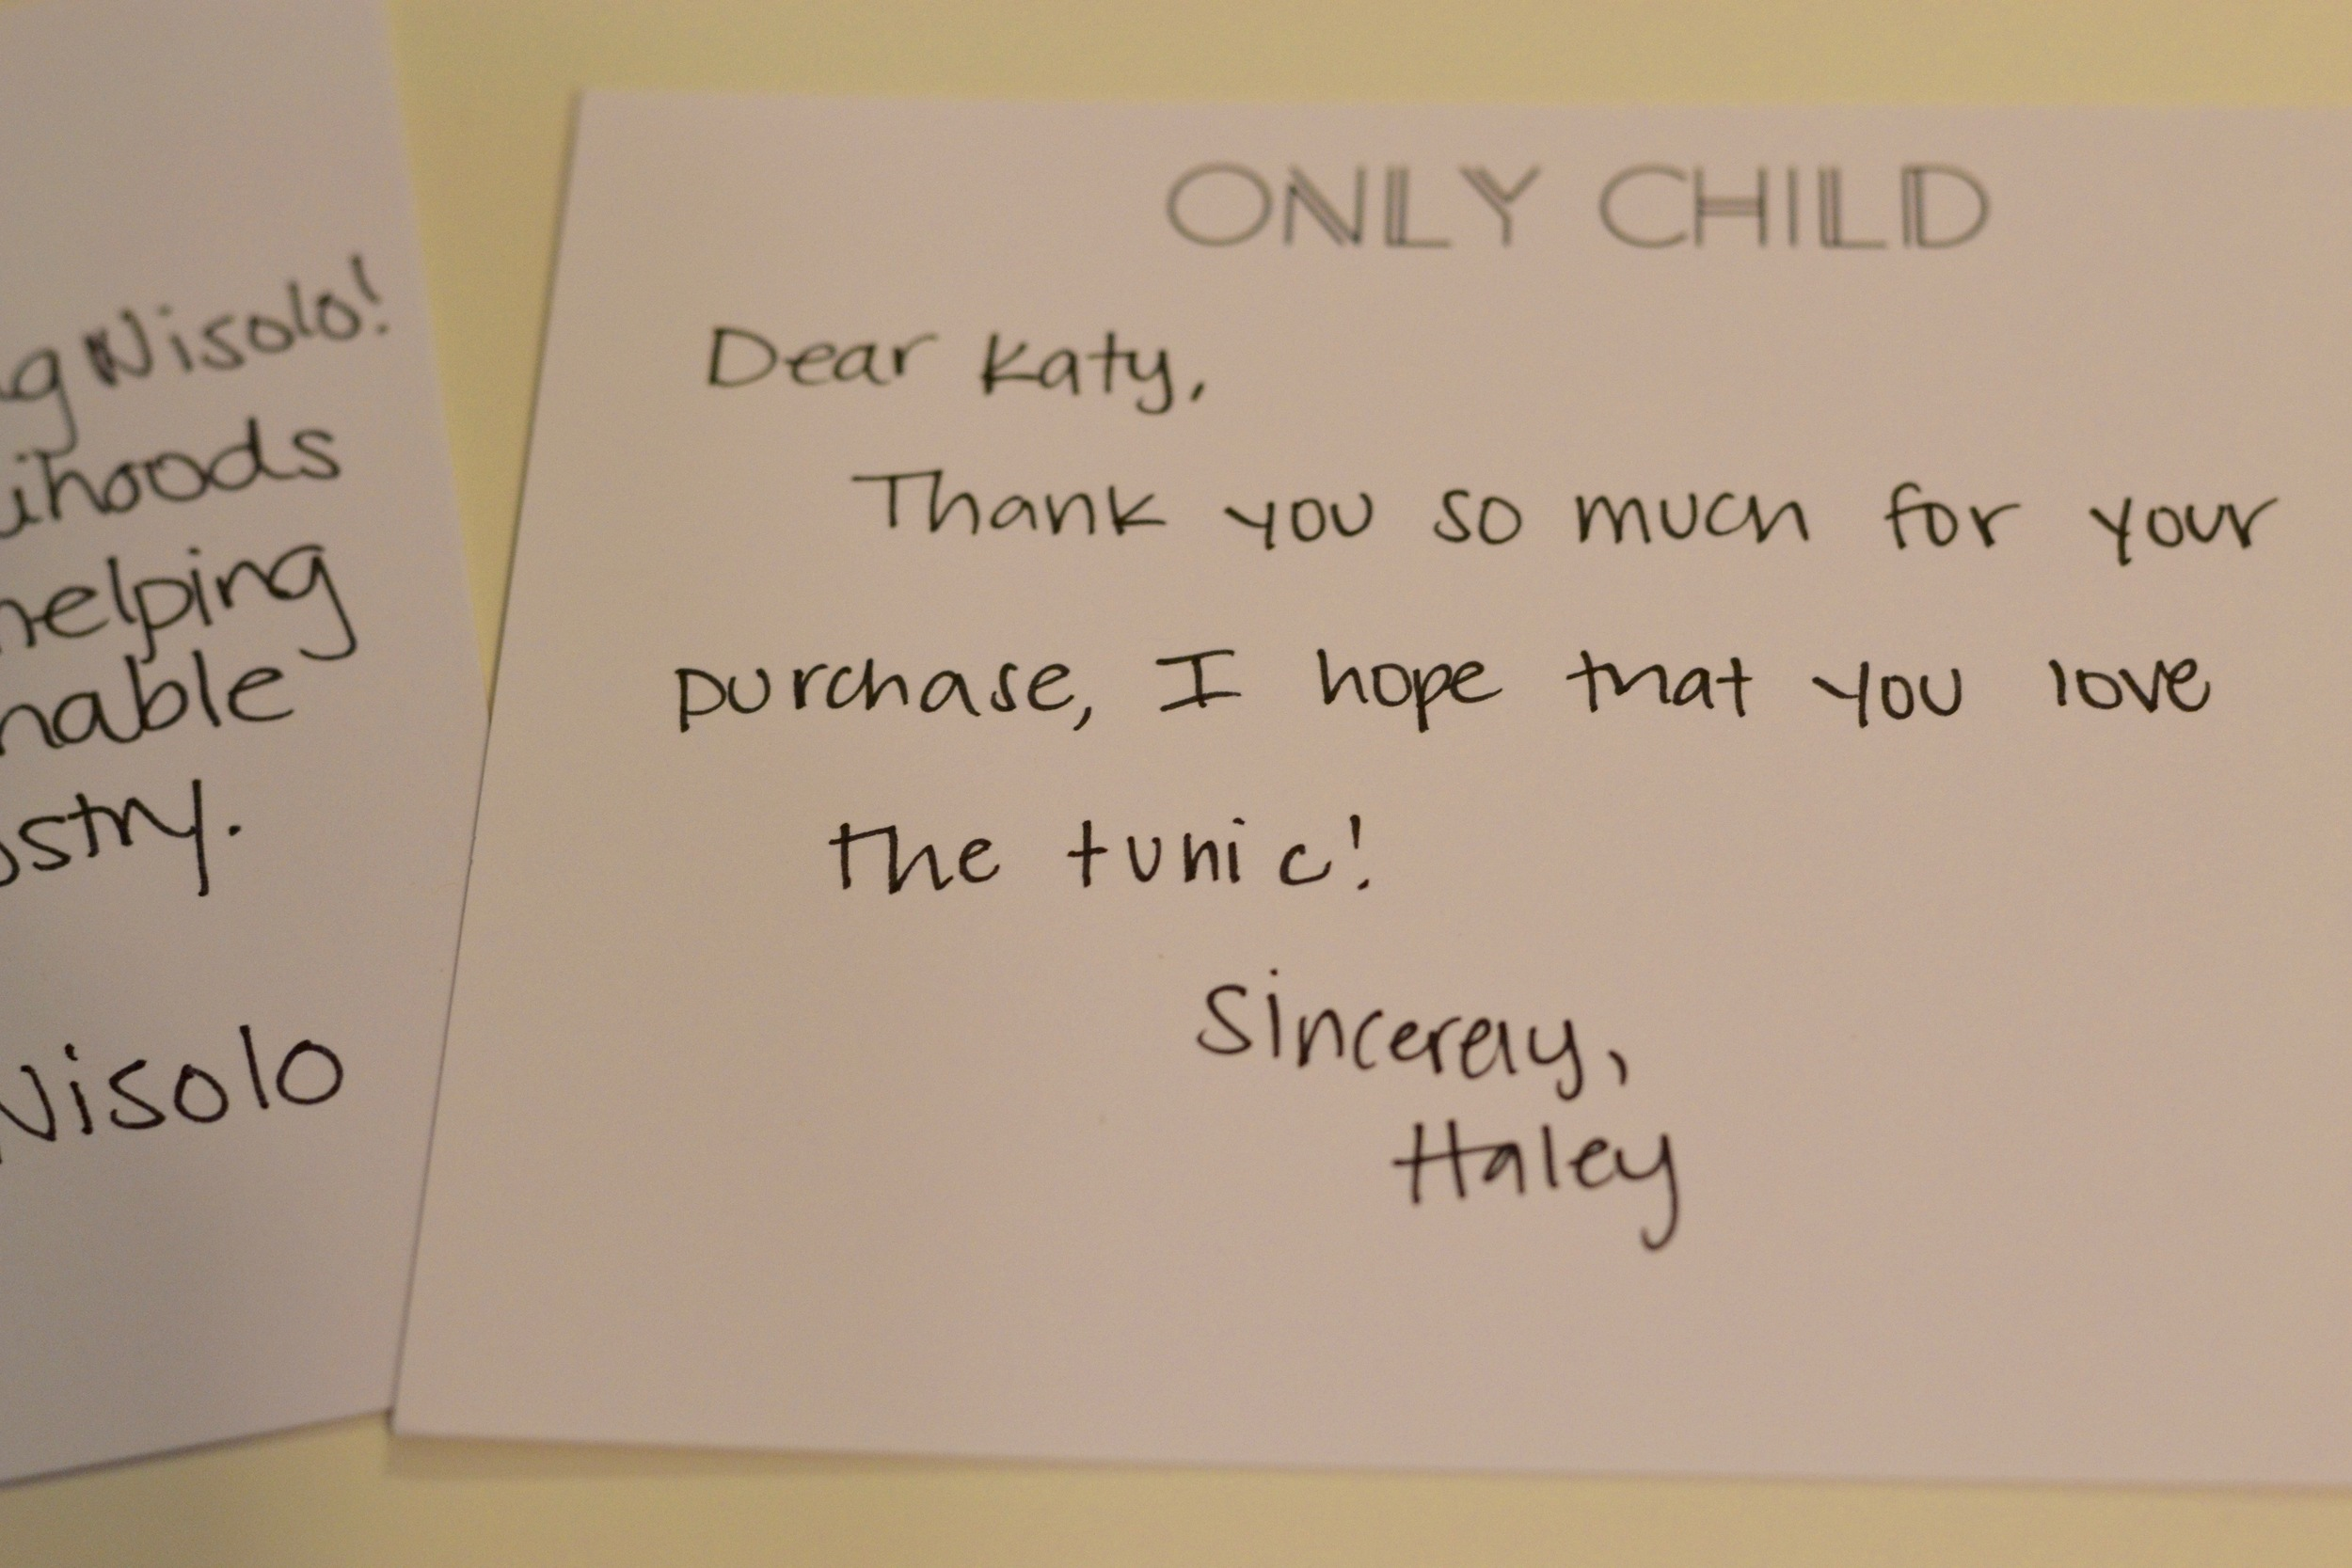 Katy saves the handwritten notes that often accompany purchases from a fair-trade company.